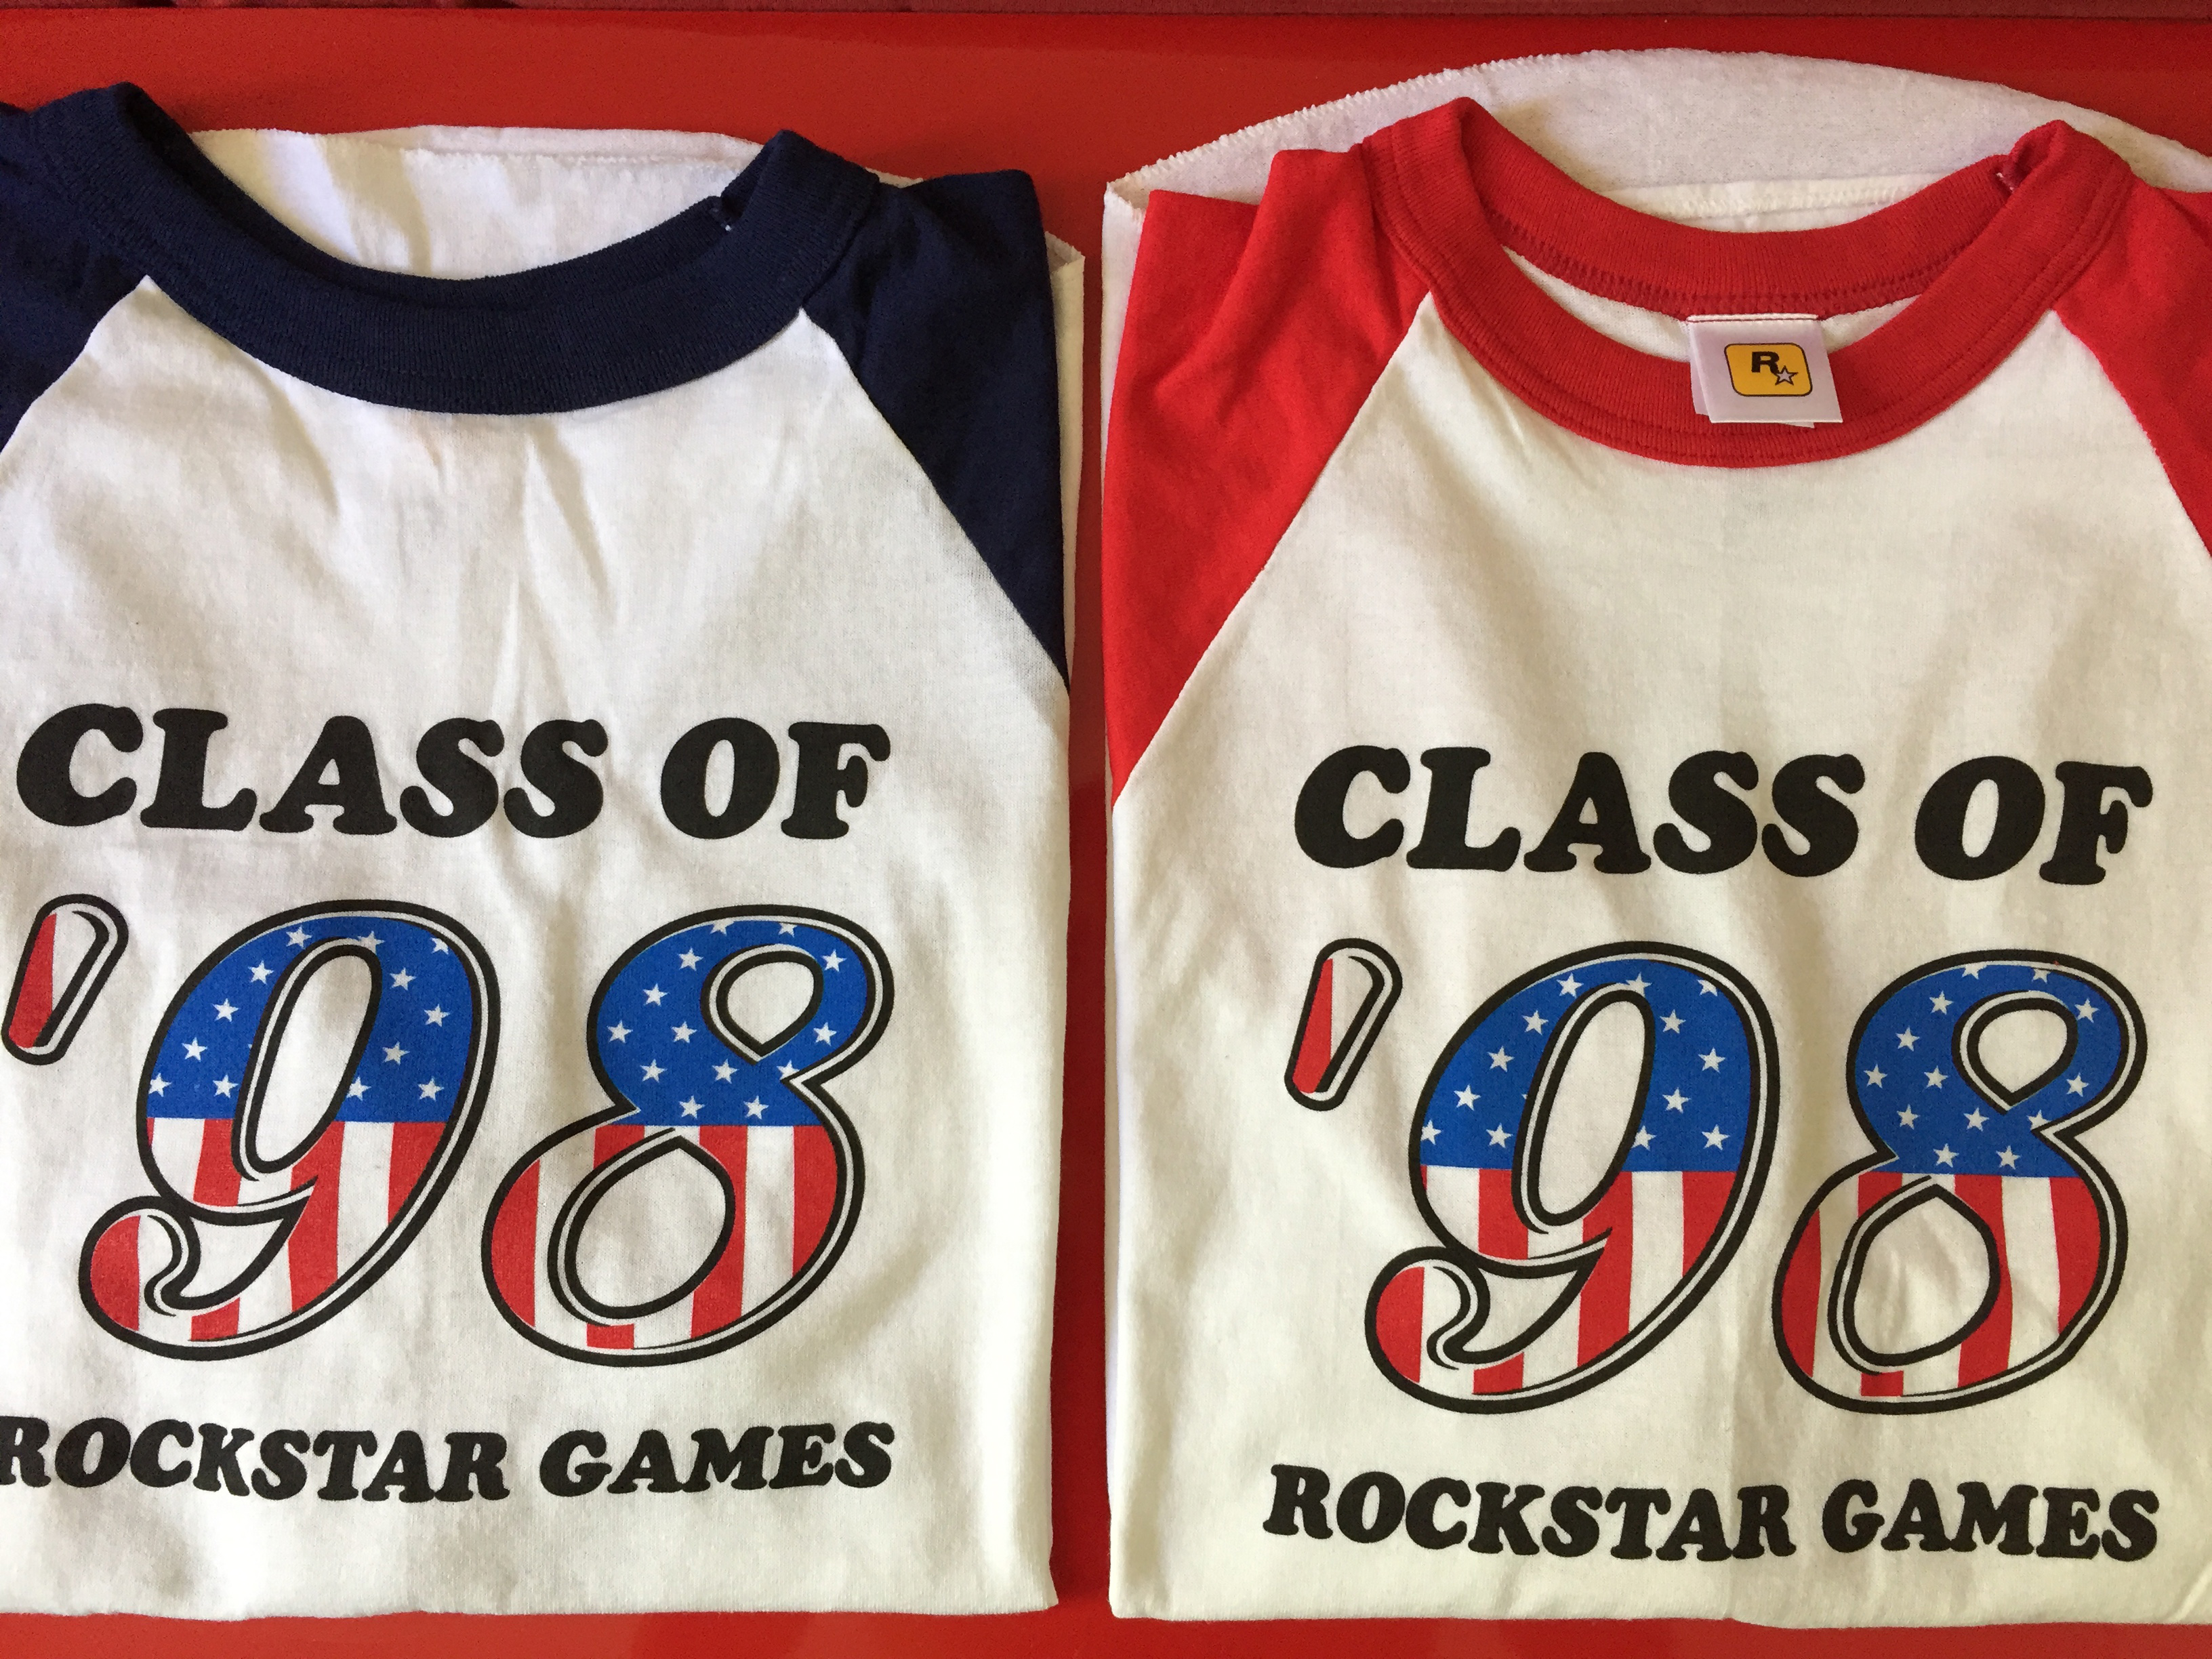 Rockstar Games - T-shirt Class of 98'